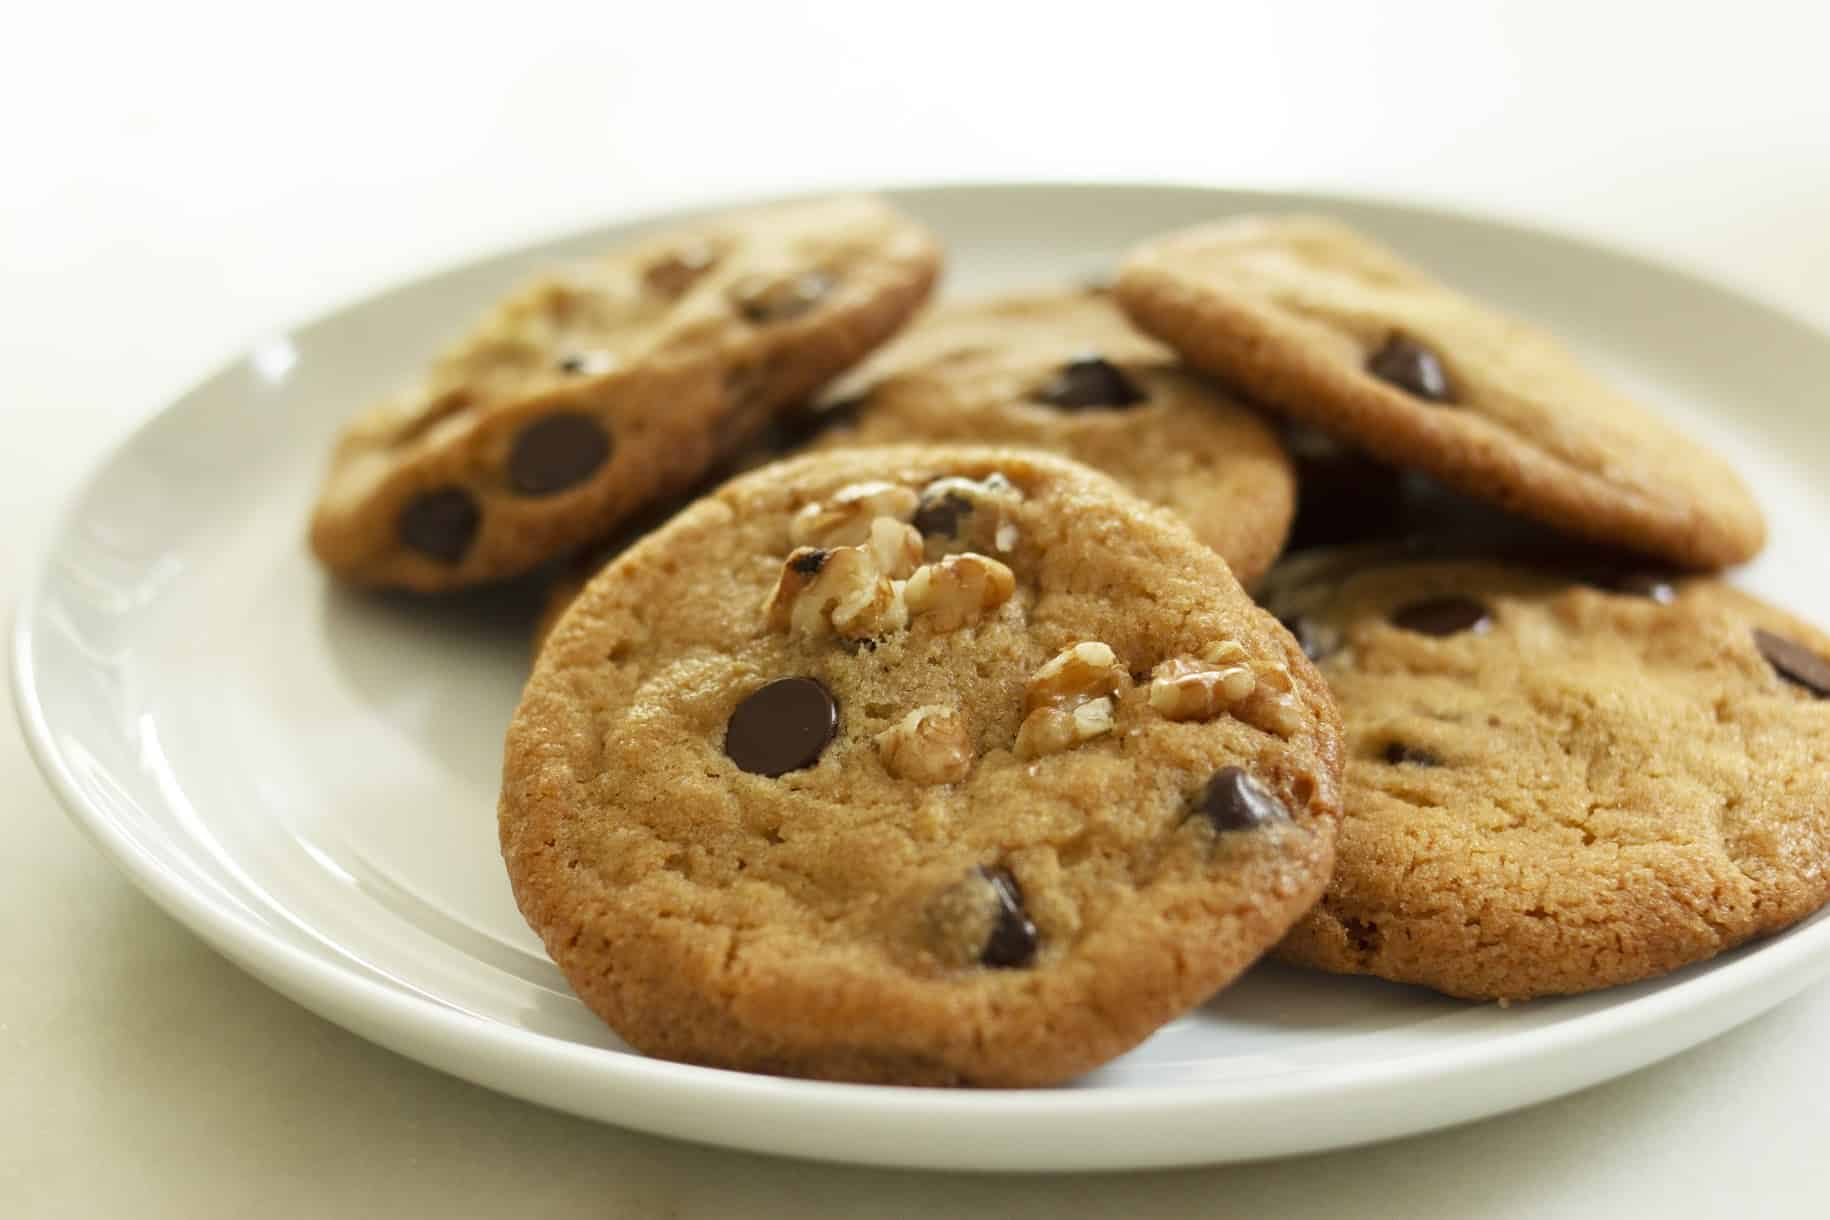 Ultra Soft Chocolate Chip Cookies with Sunflower Seeds